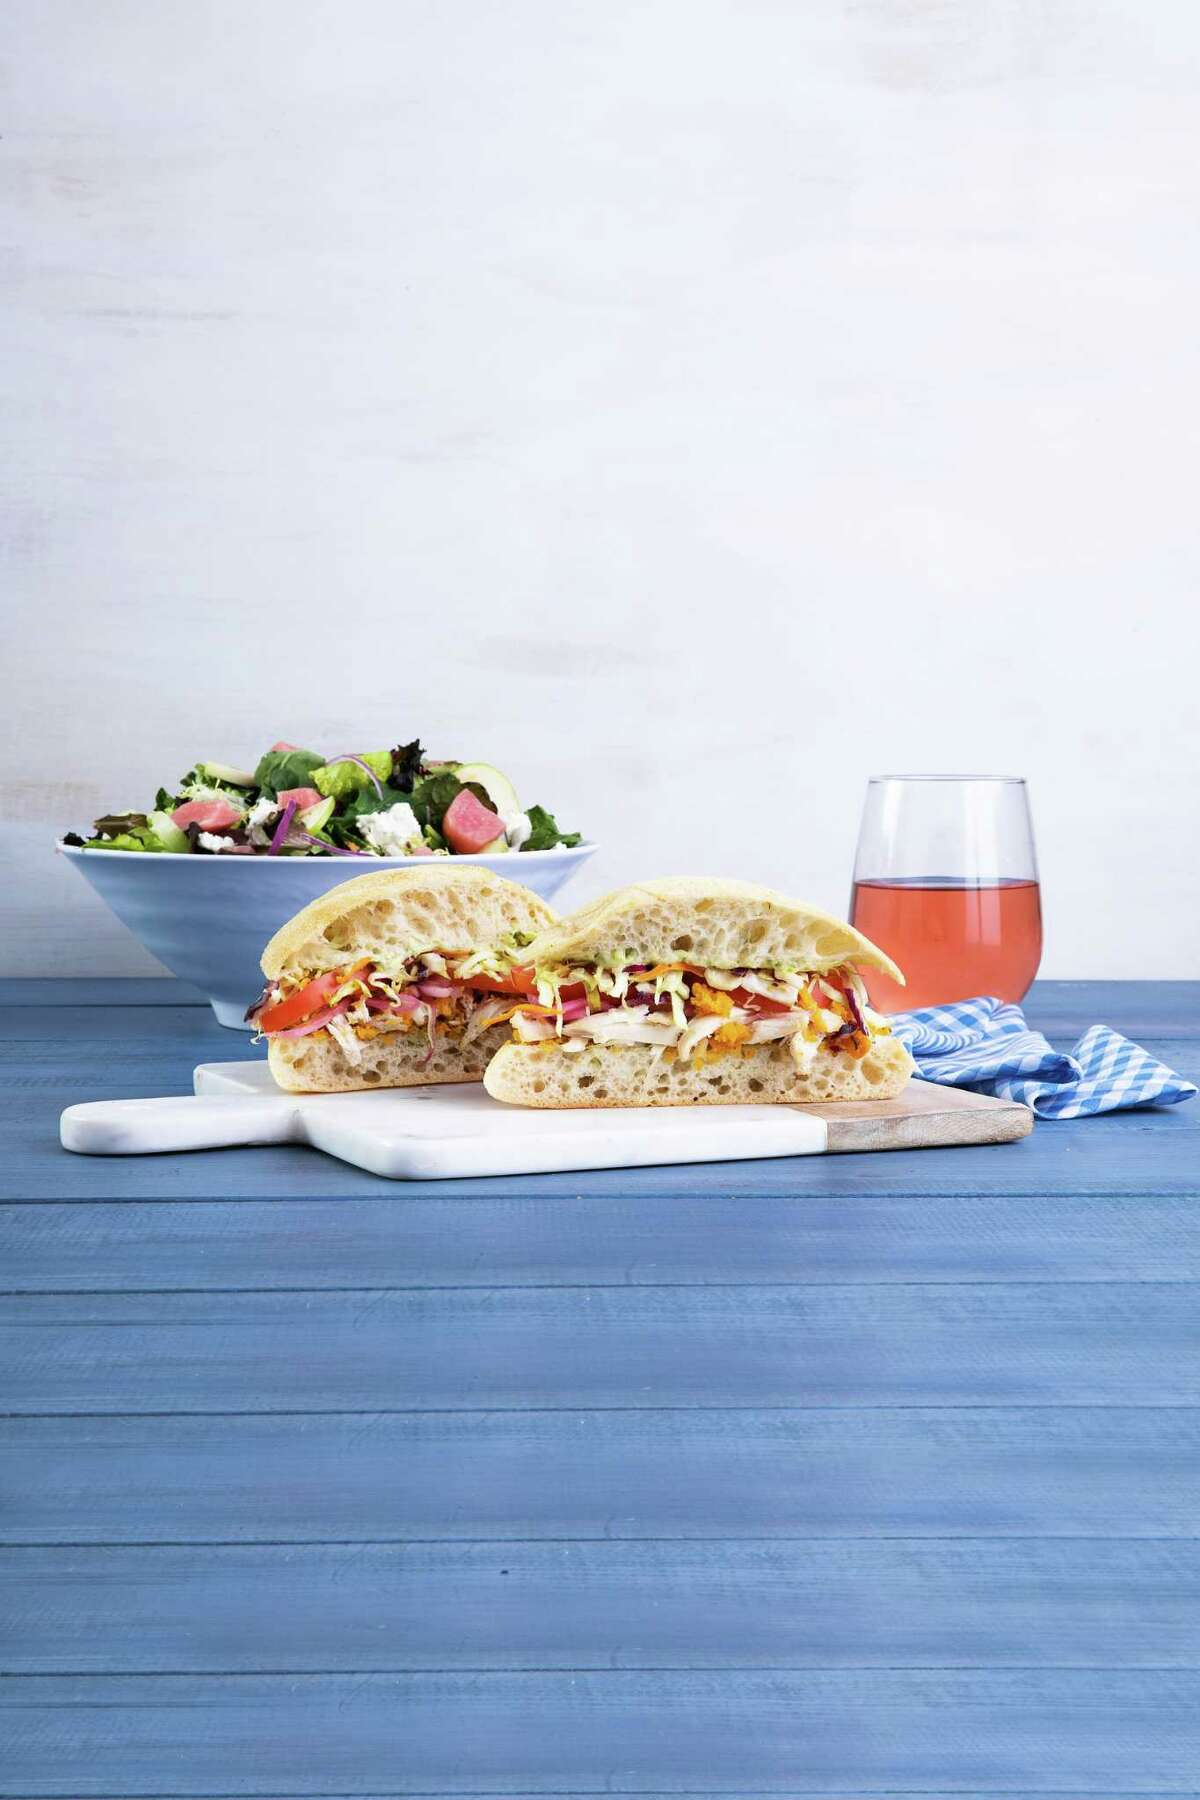 Mendocino Farms, a fast-casual sandwich and salad brand, will open its second Houston location Oct. 3 in Uptown Park. It's first shop in July in Rice Village. A third store will open Nov. 7 in downtown. Shown: Chicken sandwich and farm salad.